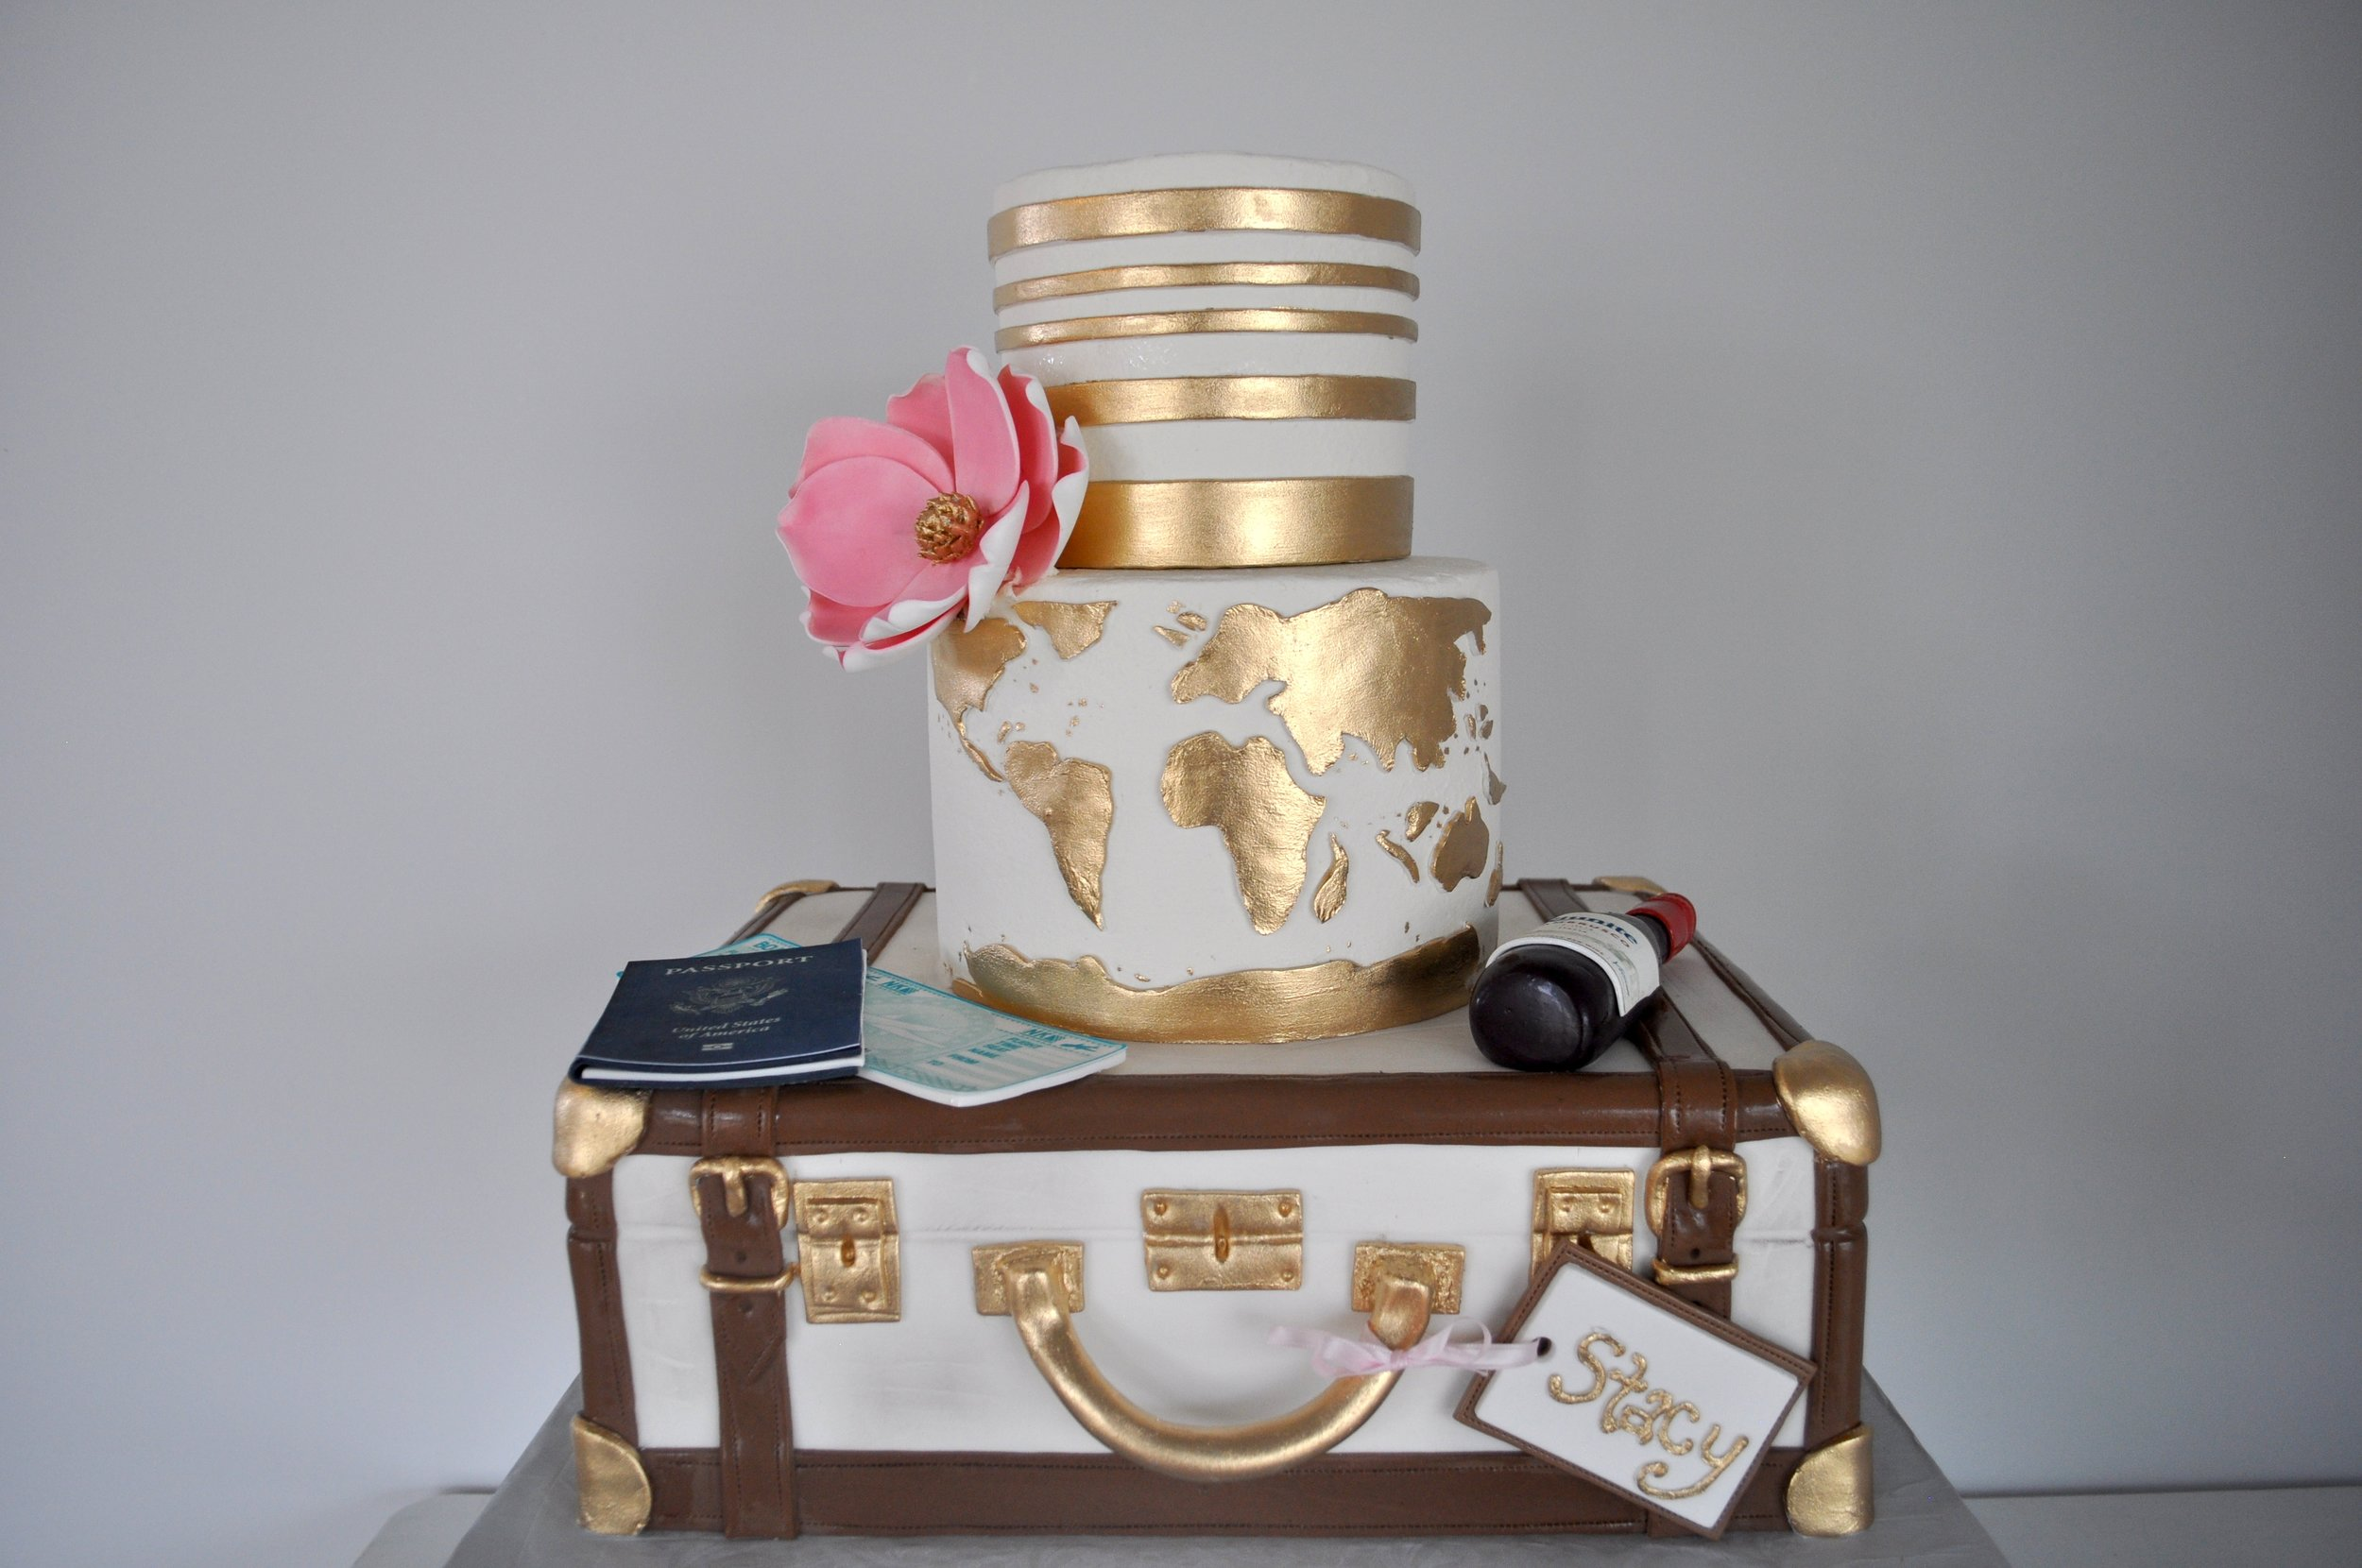 Gold Globe Travel Cake.jpeg